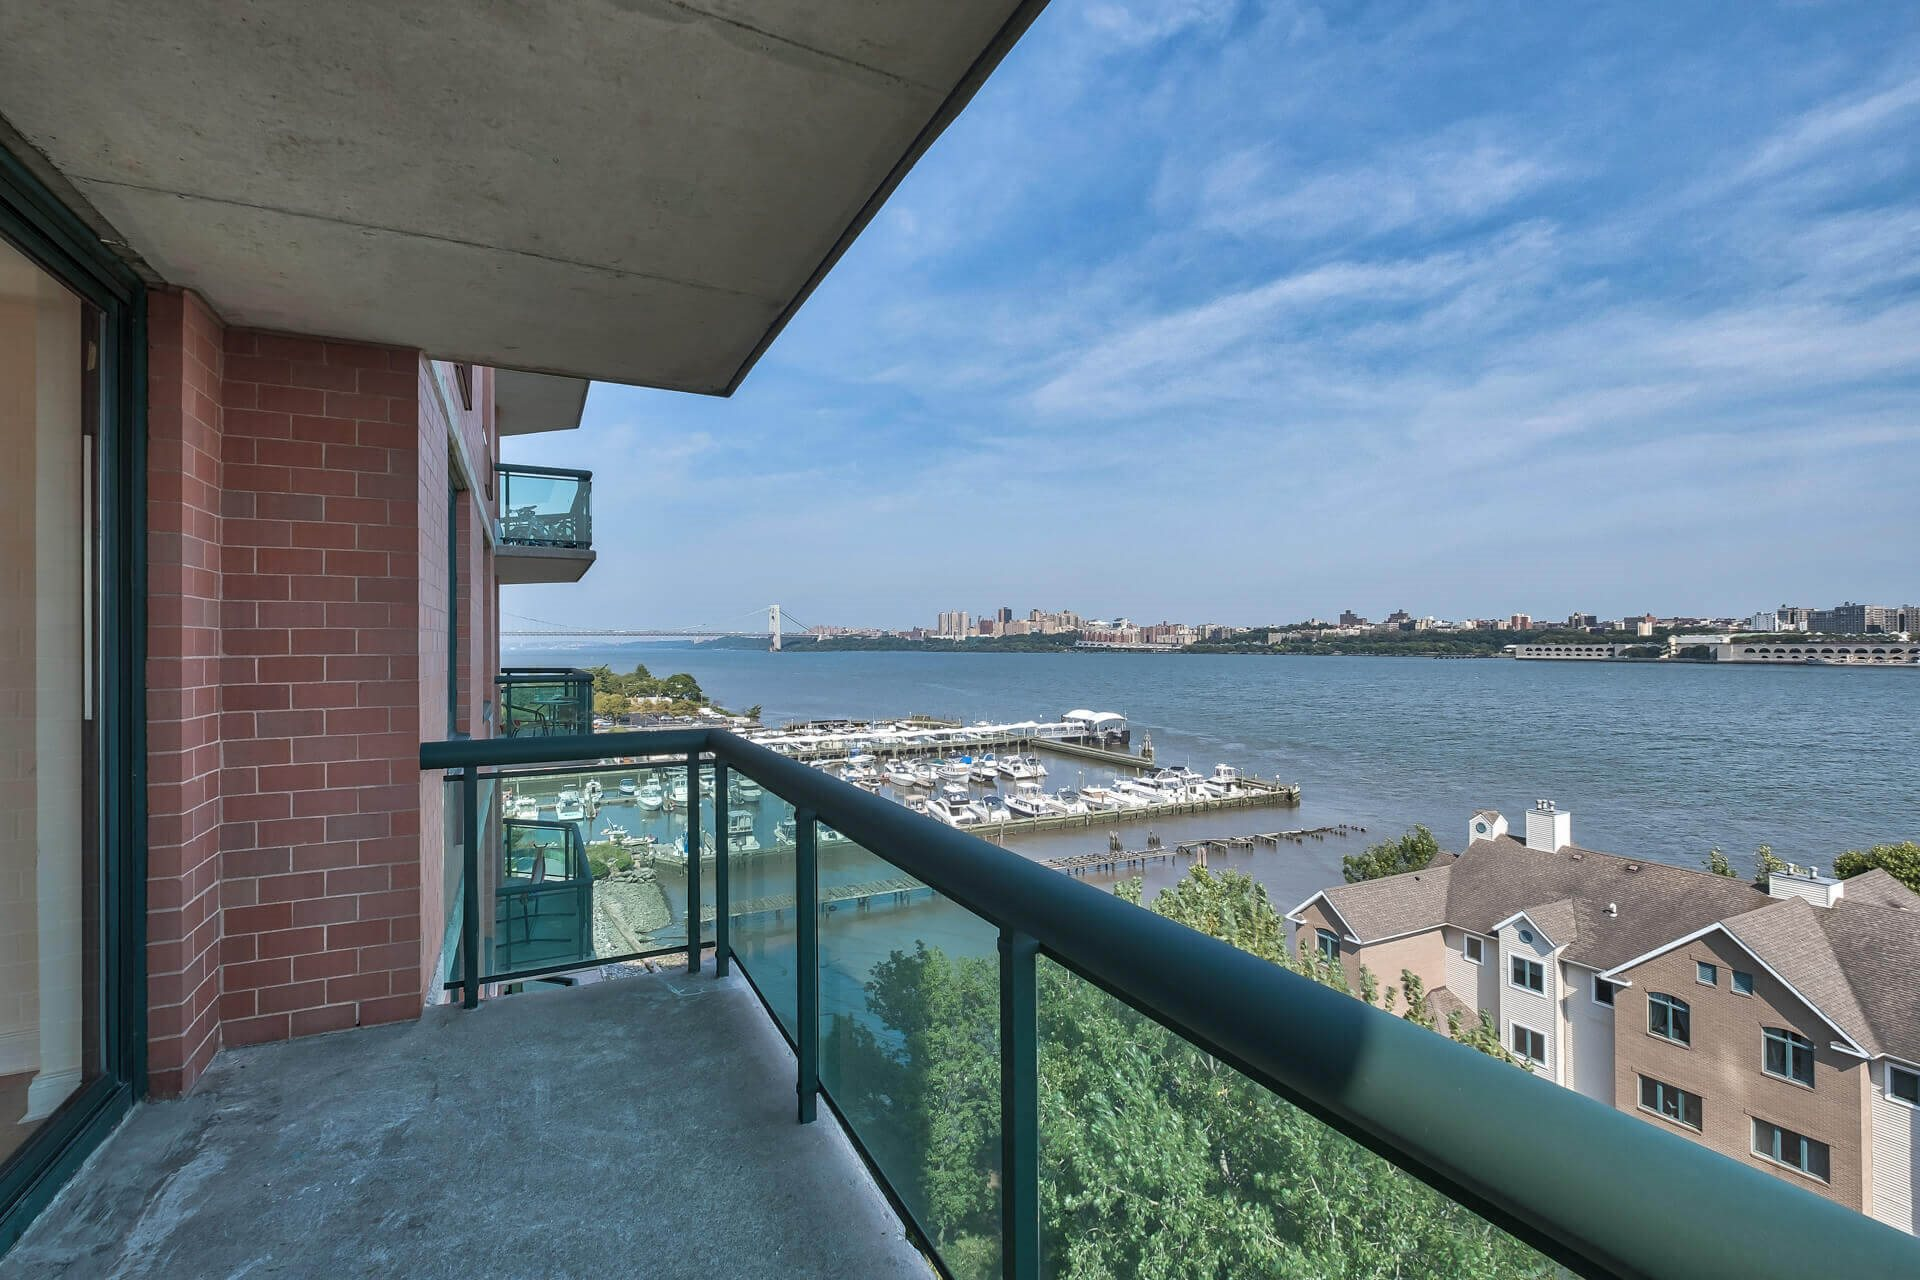 Balcony overlooking the water at Windsor at Mariners, Edgewater, NJ